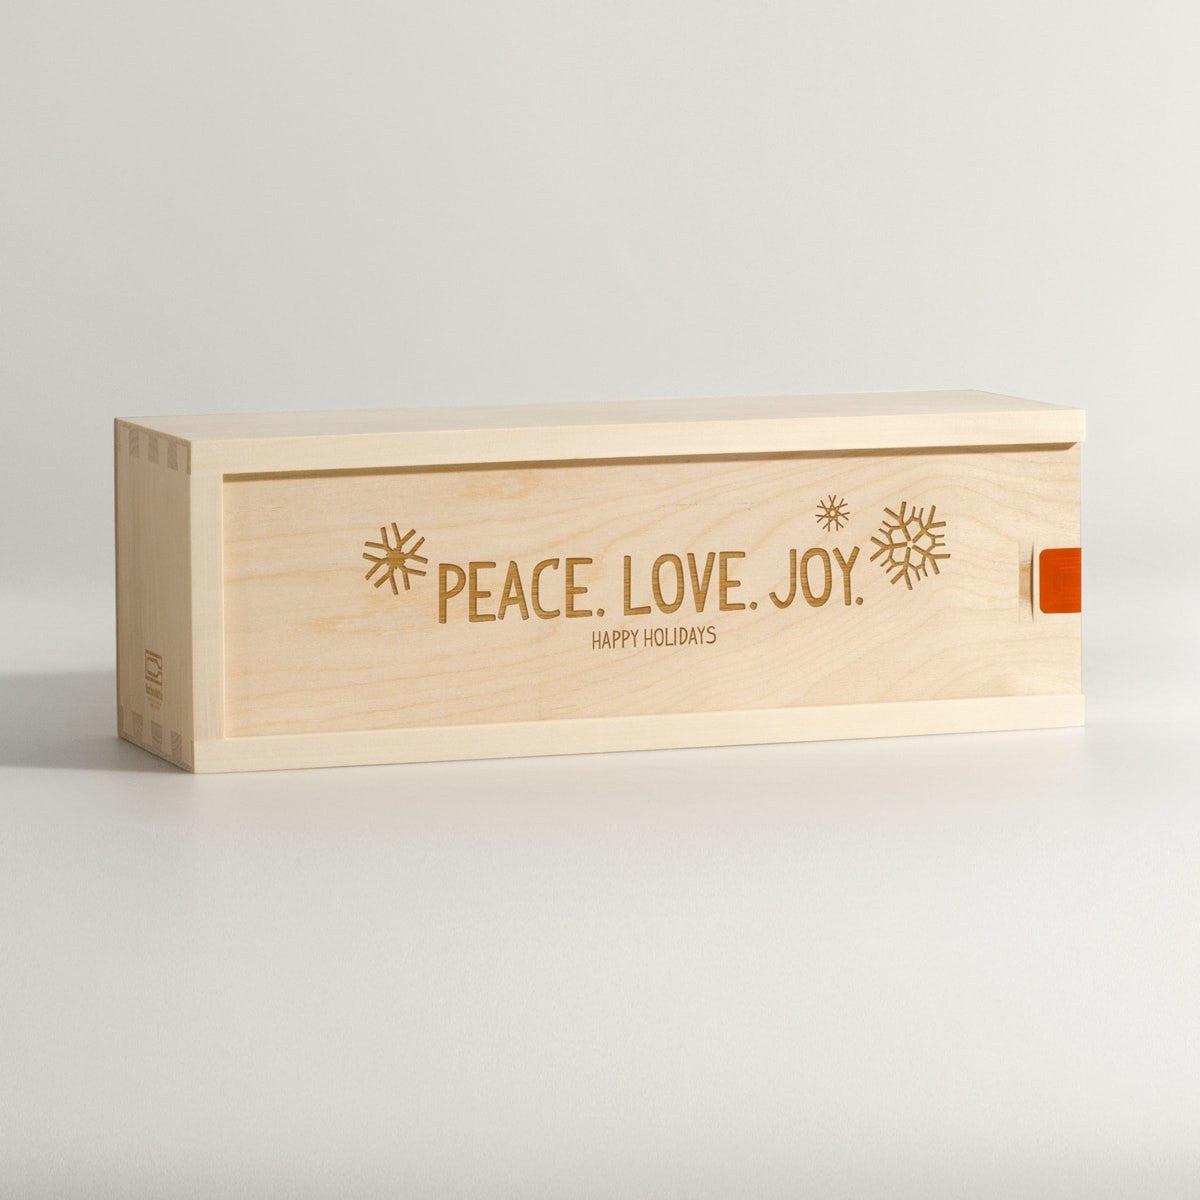 Peace Love Joy - Holiday Wine Box - Main Image